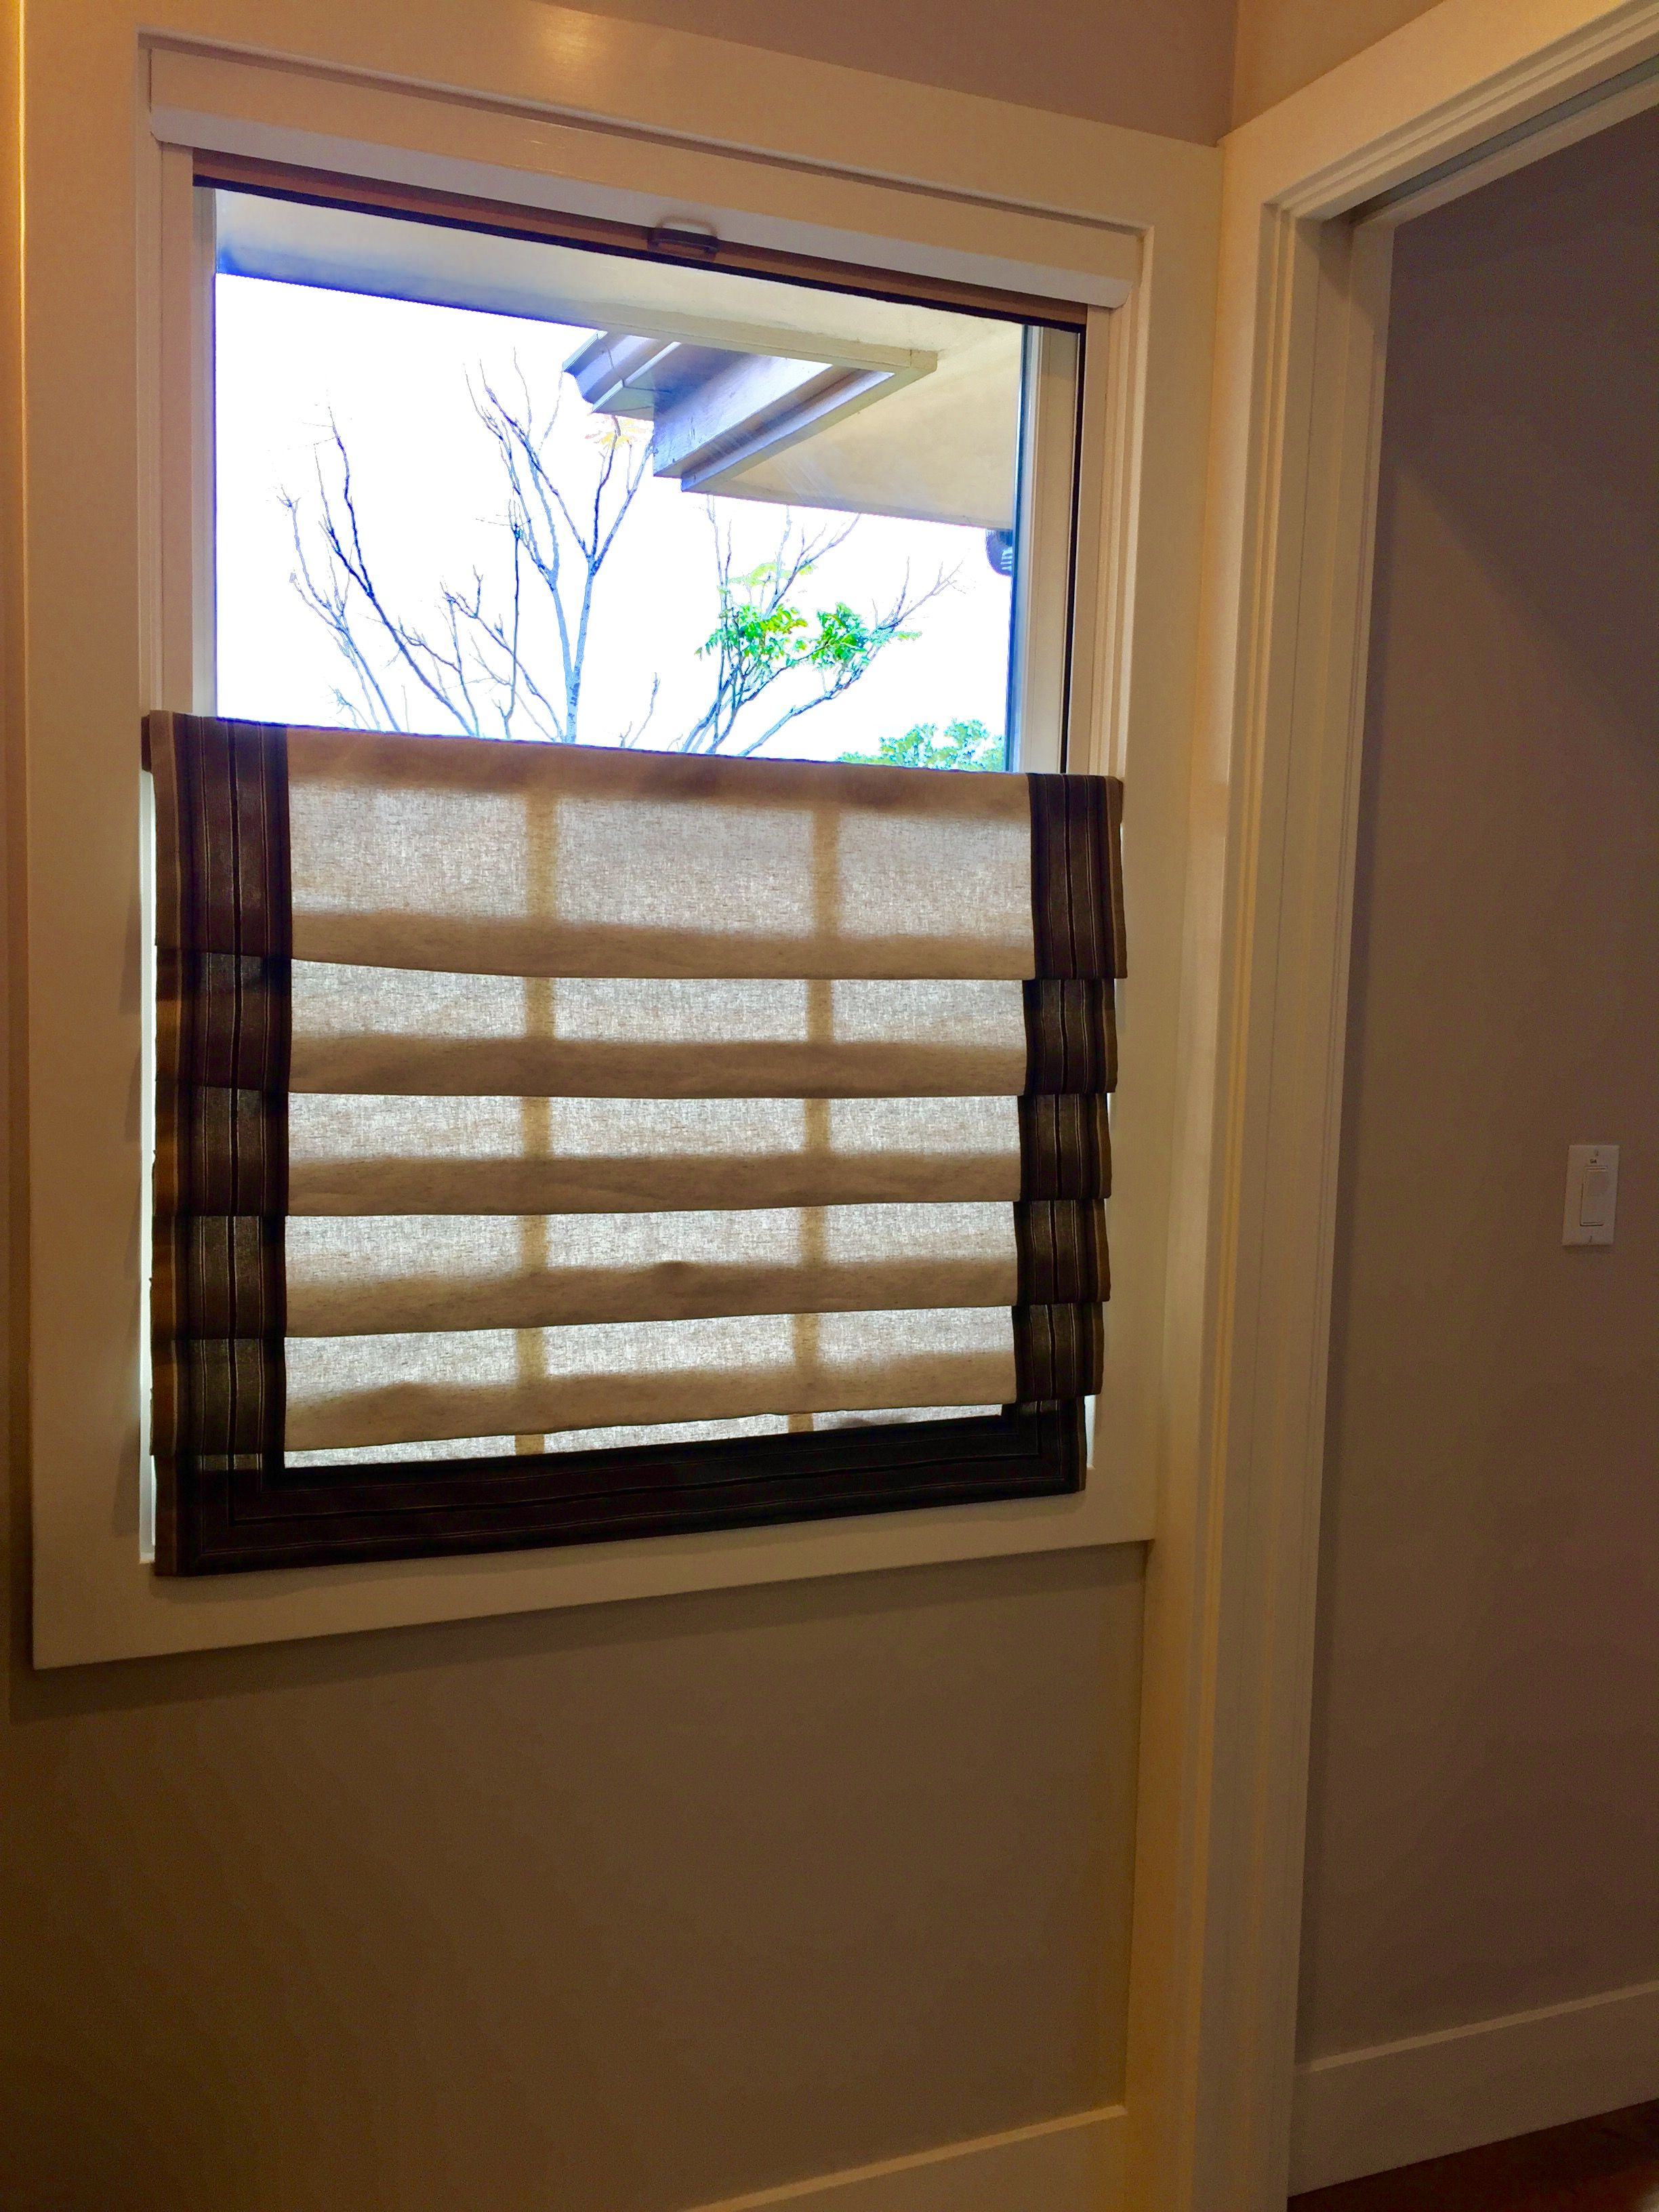 Bottom Mounted Roman Shade Covers Lower Half Of Window Window Styles Home Deco Shade Cover